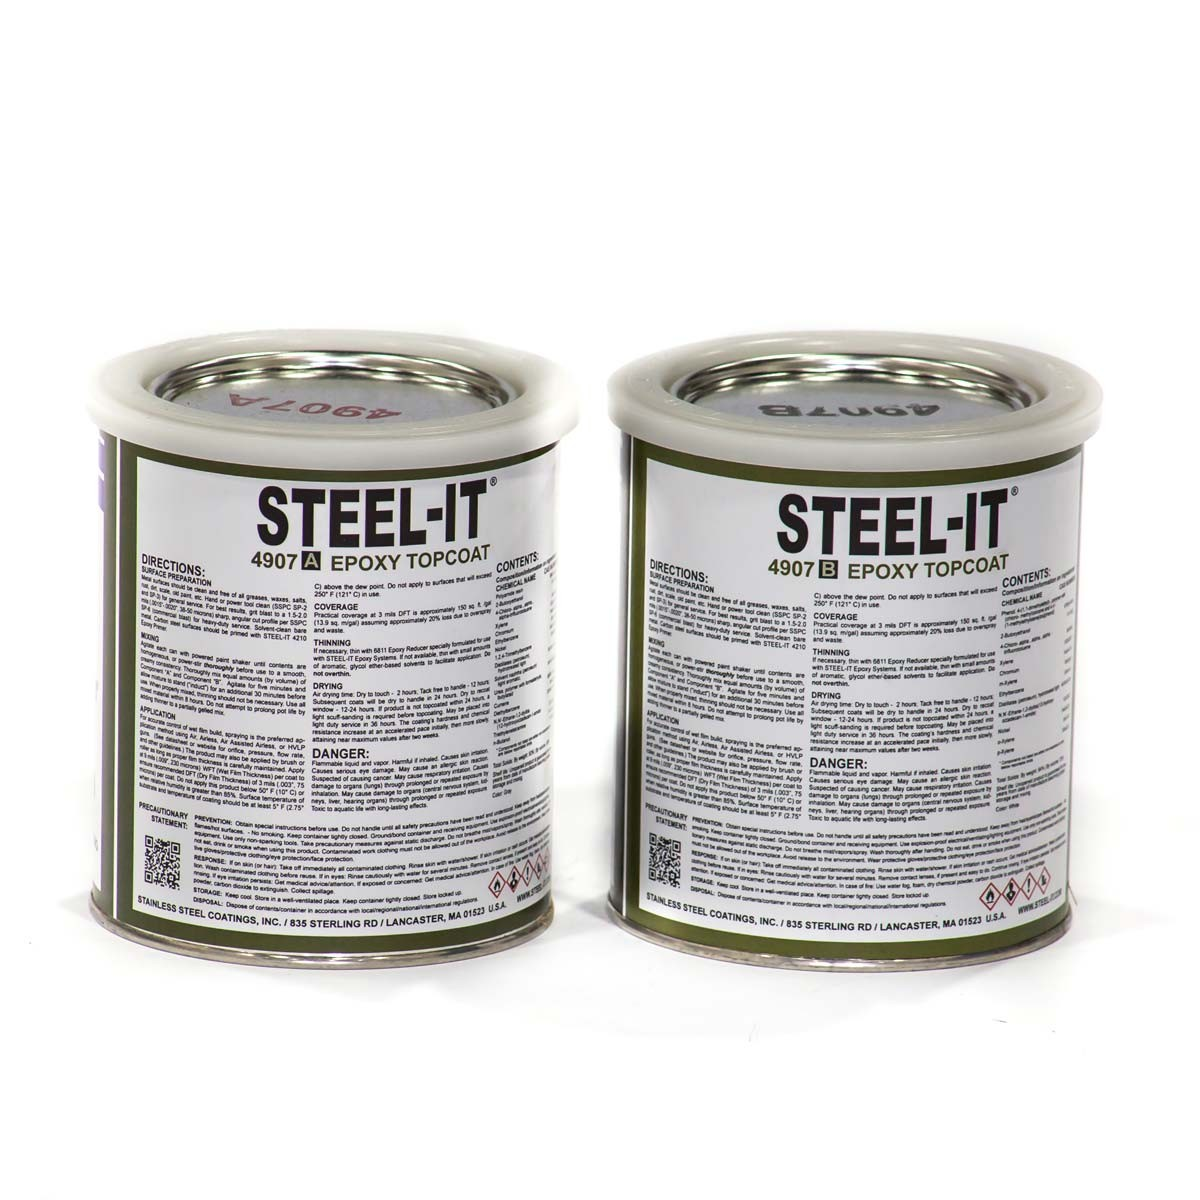 Epoxy Paint What Is It And What Is It Used For: Steel-It Epoxy Finish 2 Quart Kit 4907Q